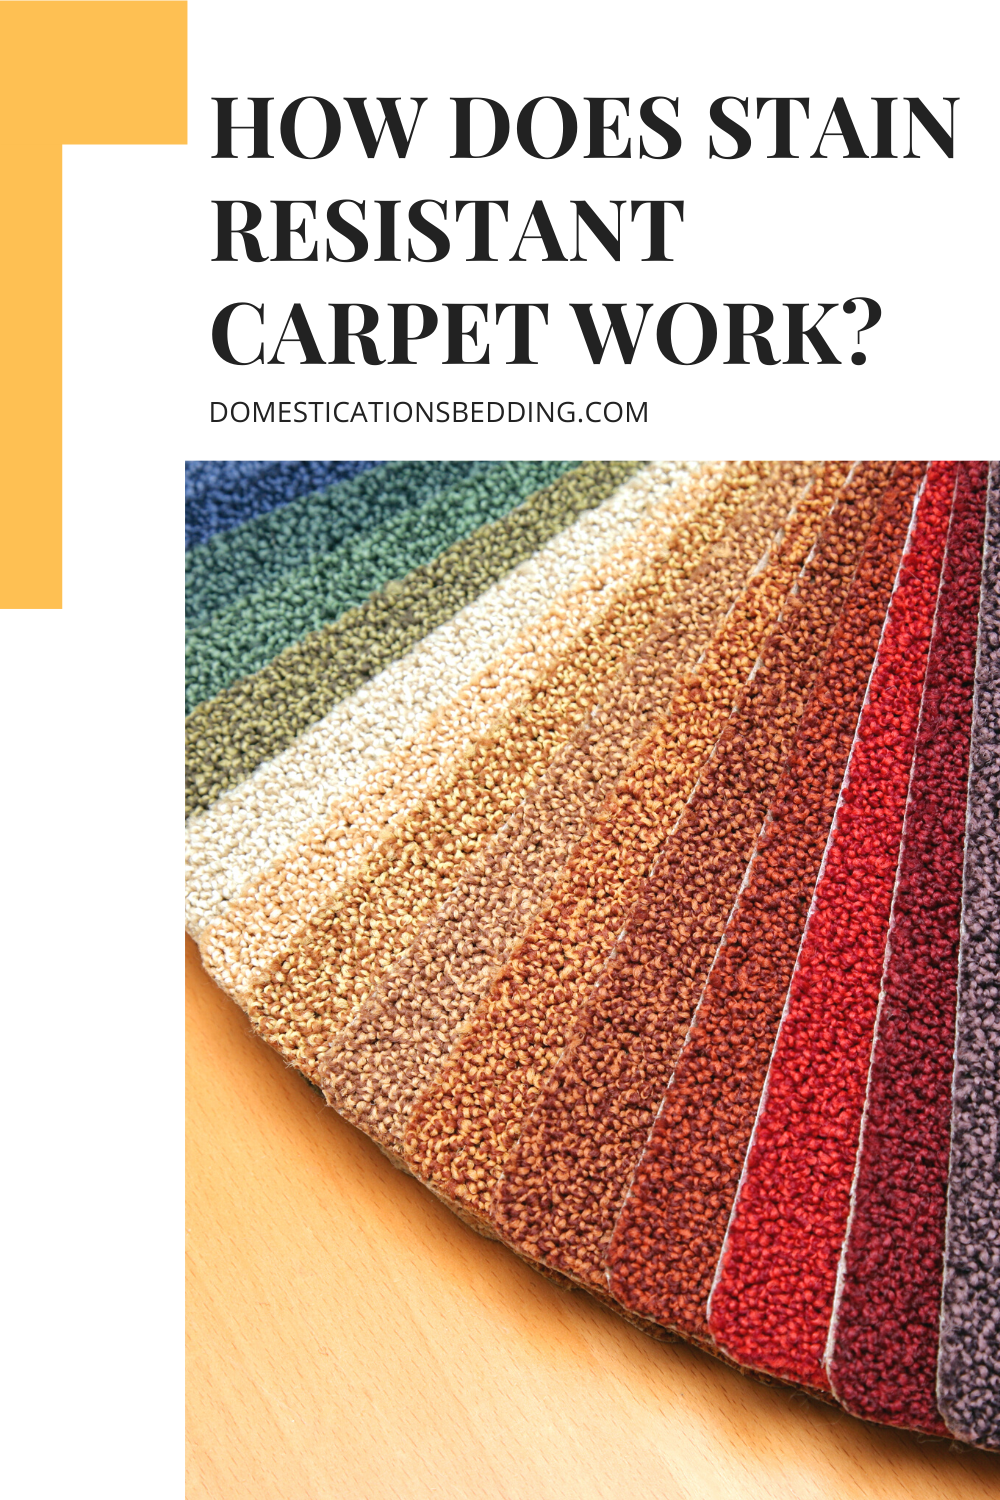 Stain Resistant Carpet Work